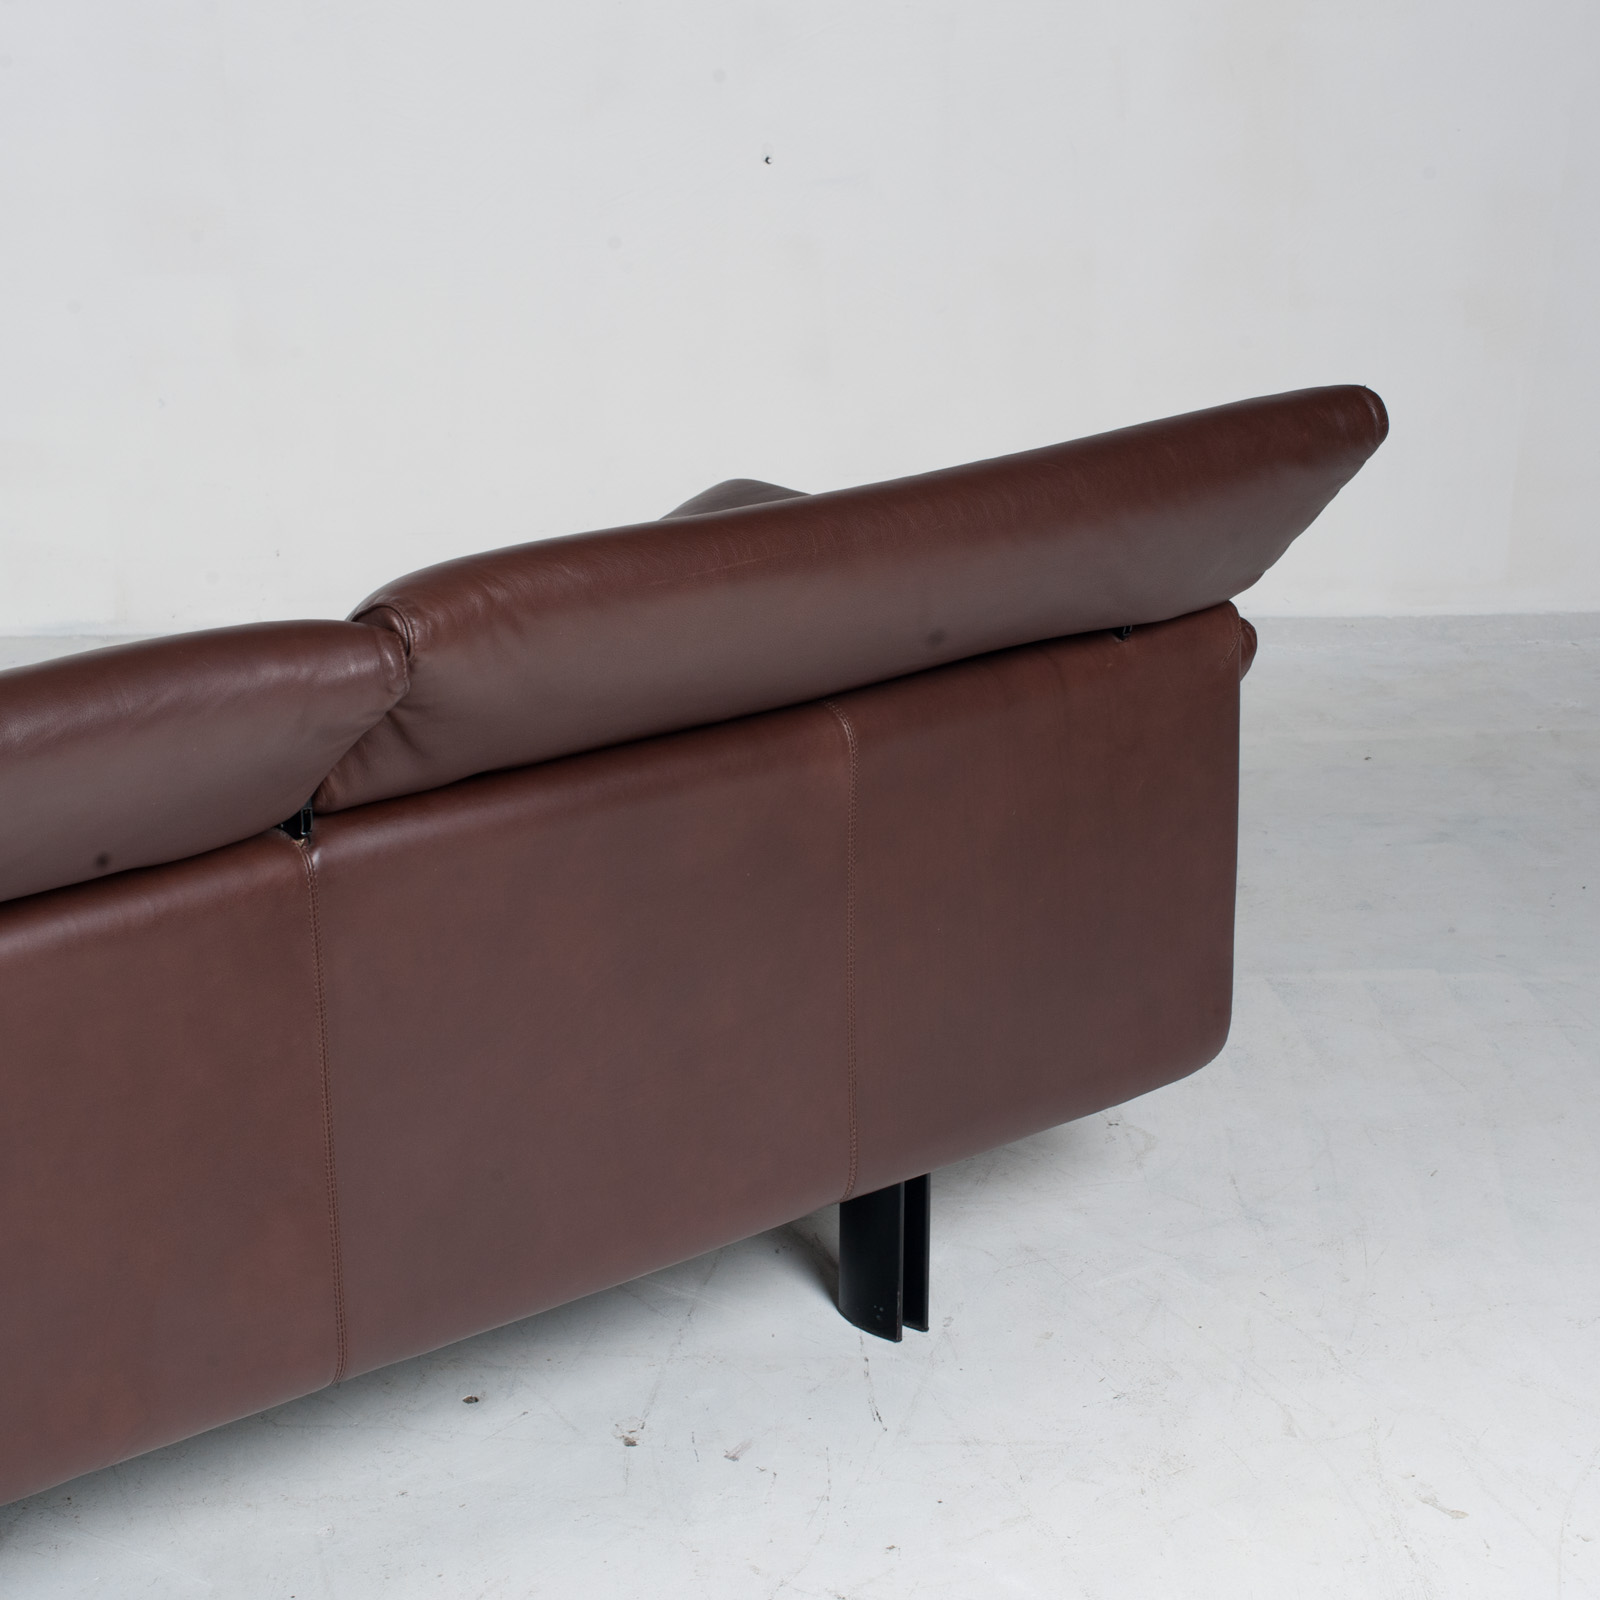 Alanda Sofa By Paolo Piva For B&b Italia In Burgundy Leather 1980s Italy 18